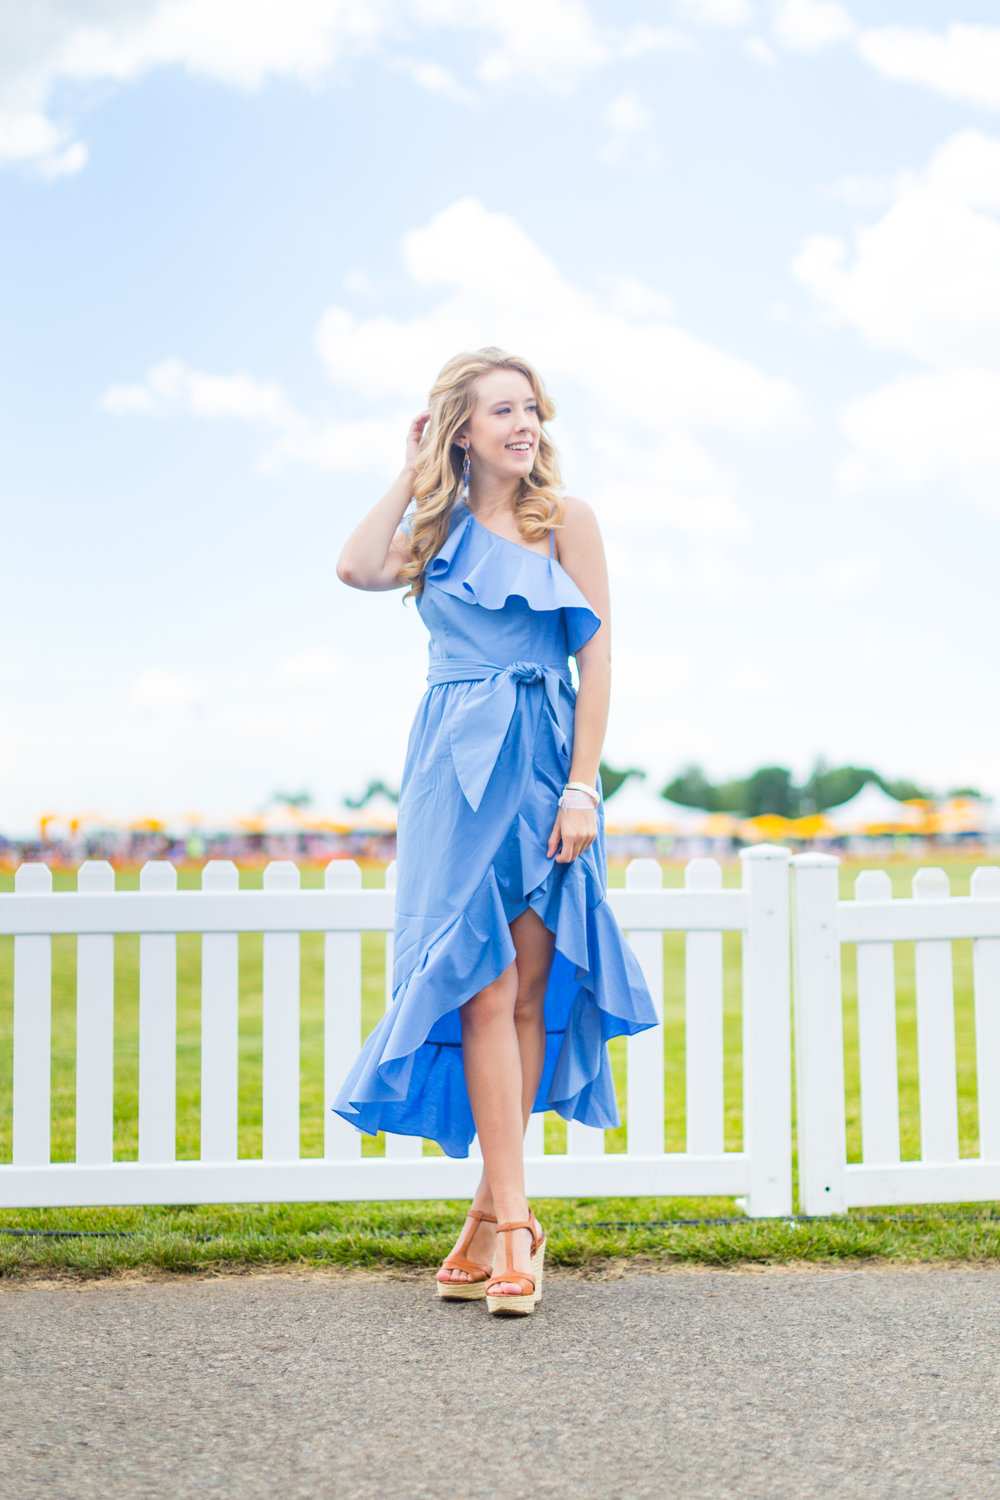 Veuve Clicquot Polo Classic NYC Summer Style Ruffled One Shoulder Blue Dress-25.jpg